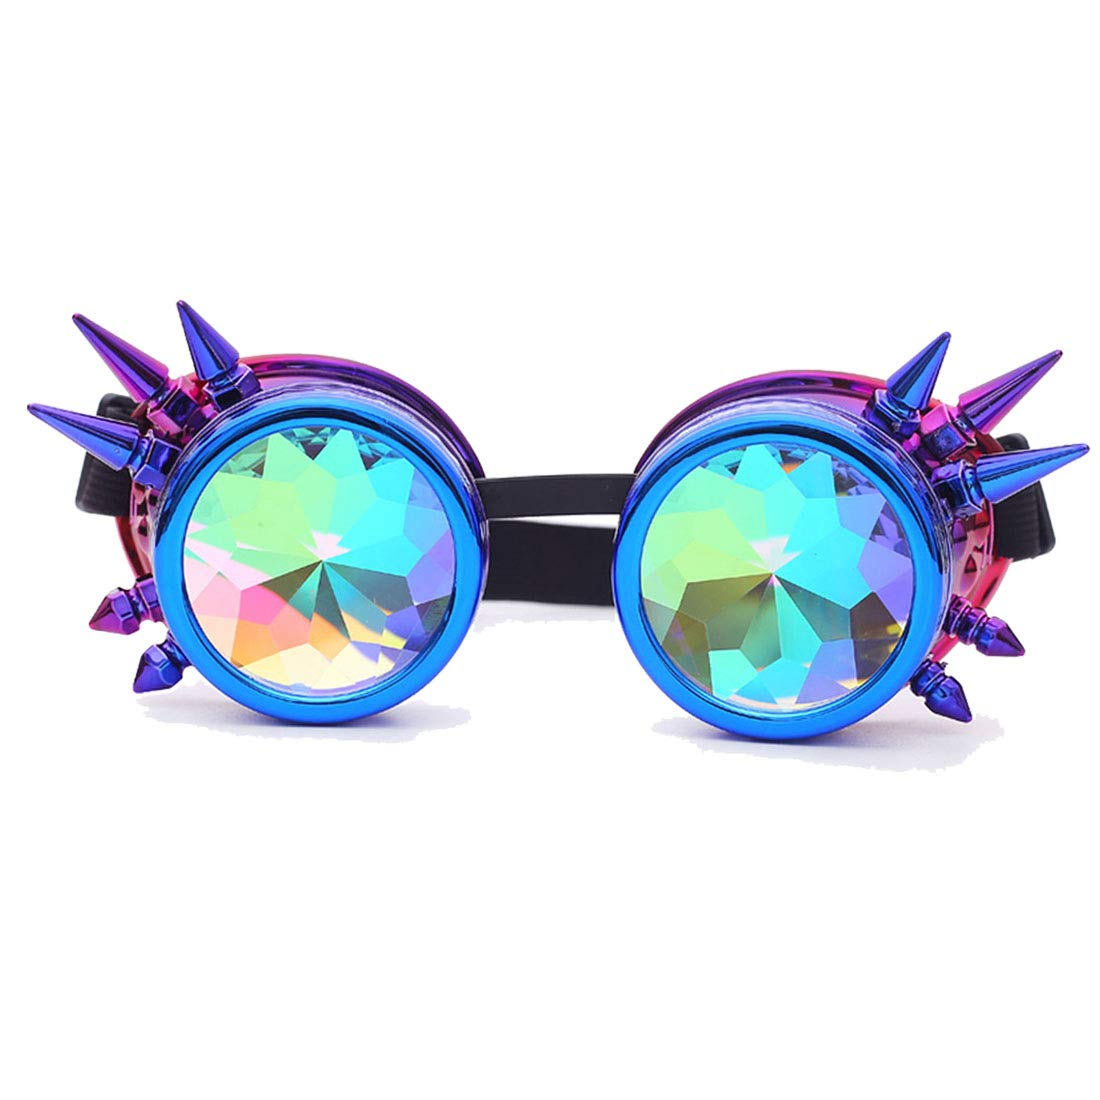 blueepurple Spike Kaleidoscope Steampunk Rave Glasses Goggles with Rainbow Crystal Glass Lens